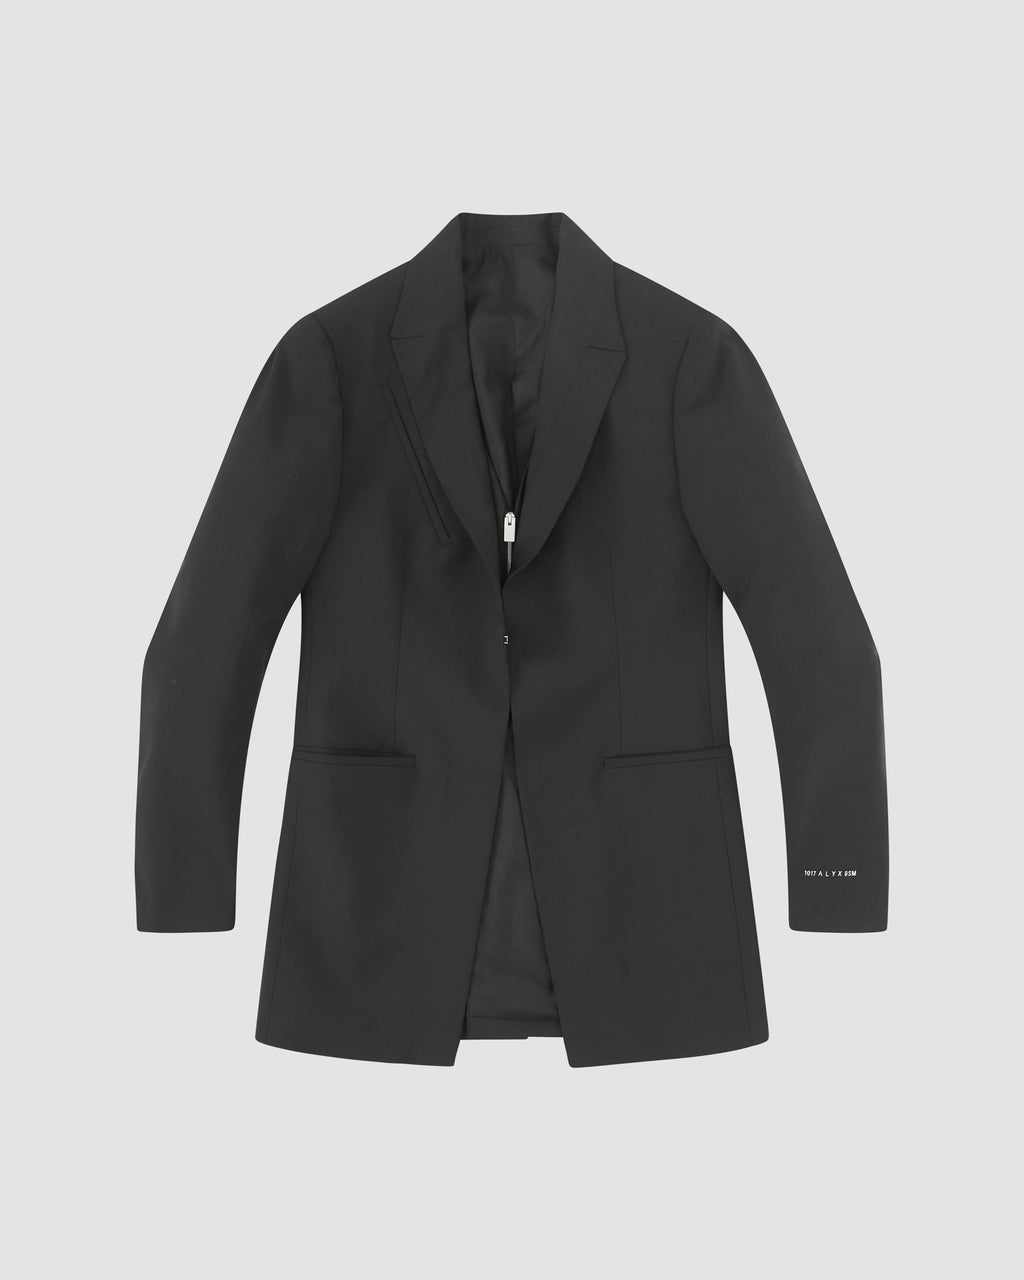 EXPLODED TAILORING JACKET